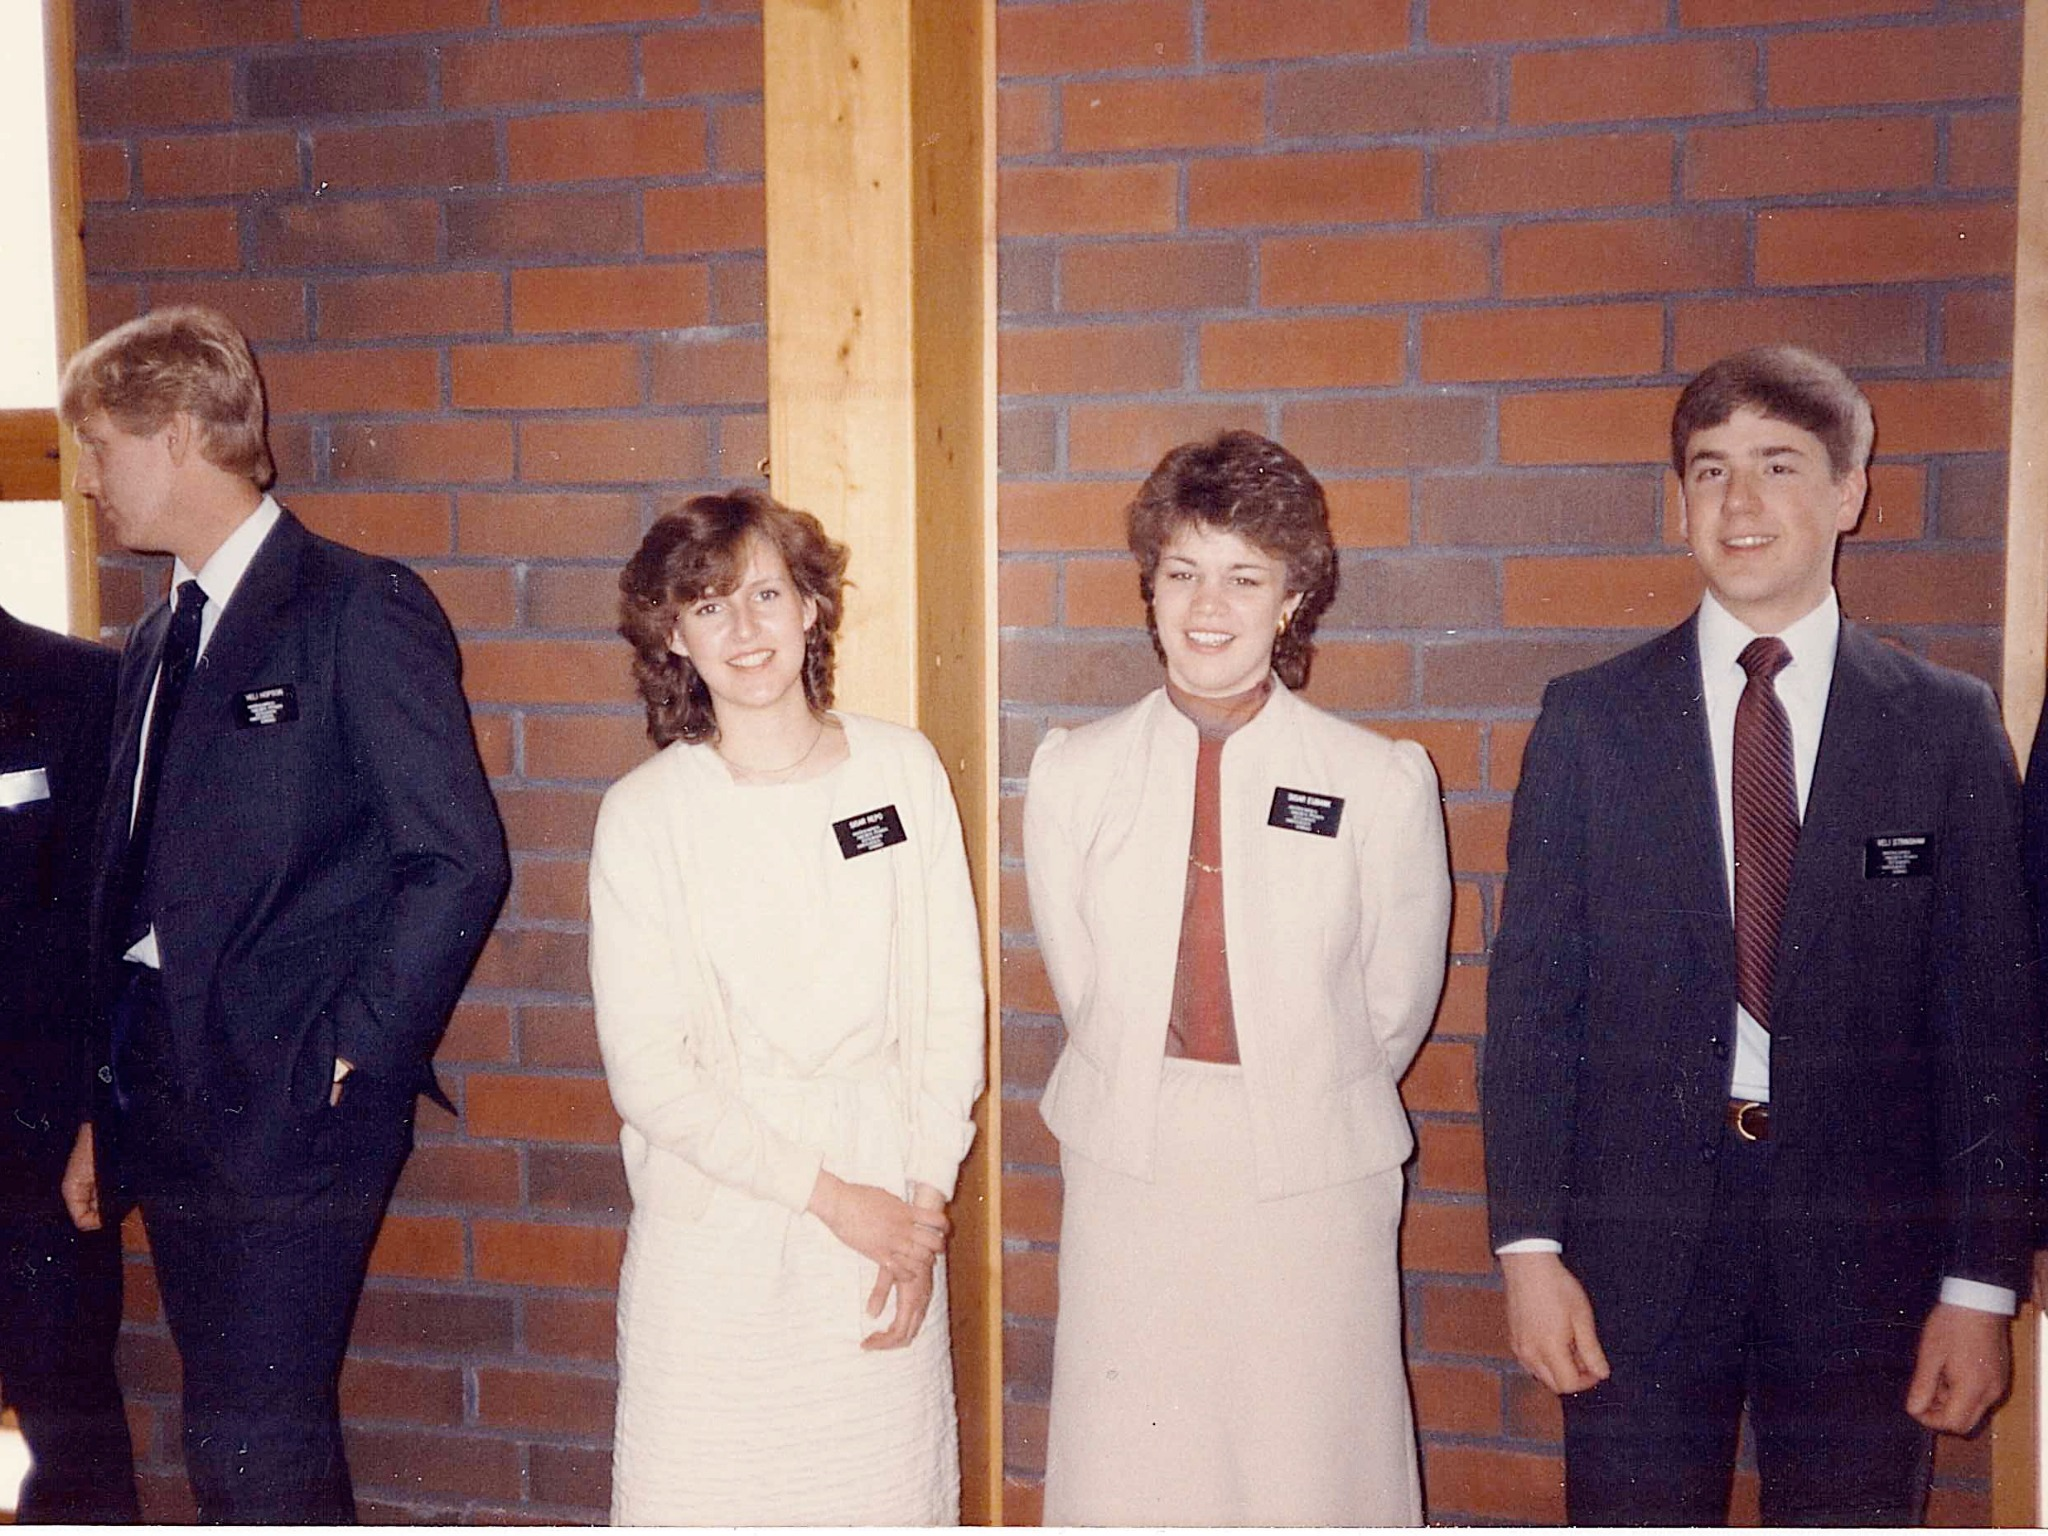 Sister Sharon Eubank of the Relief Society general presidency served a mission in Finland in the 1980s.